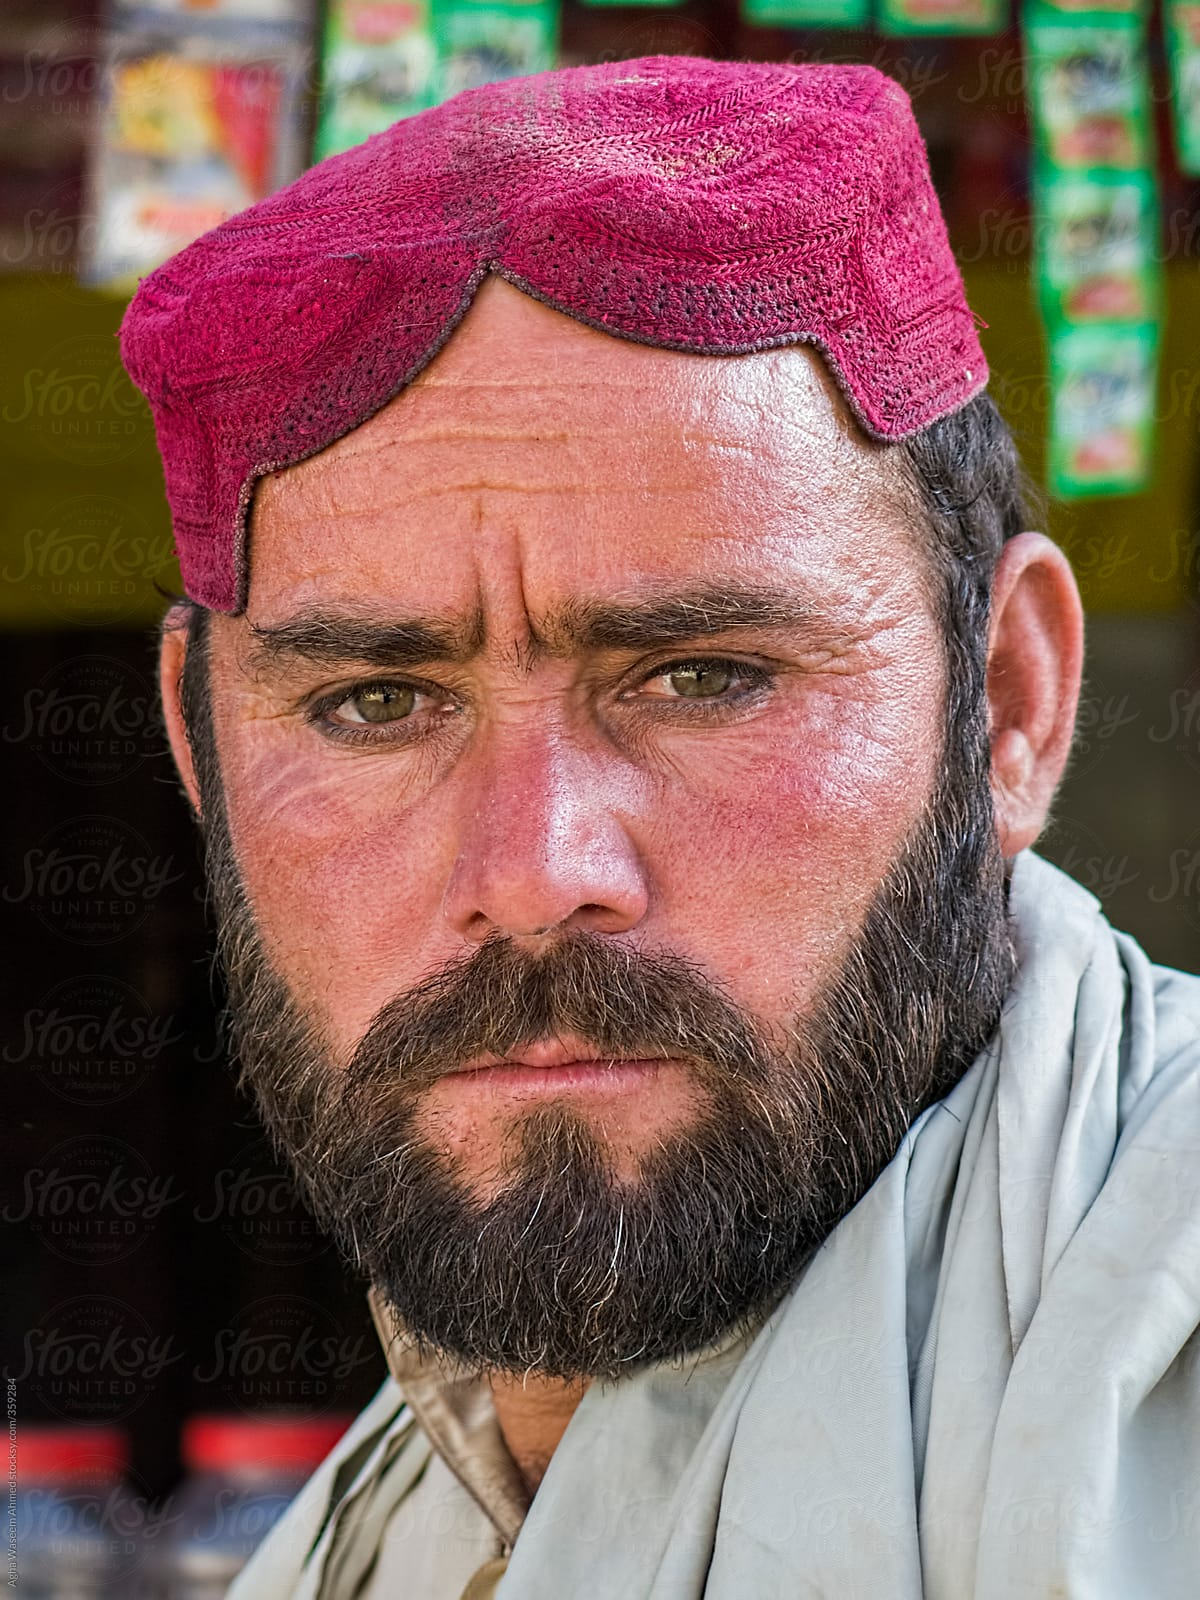 A Pashtun Tribal Middle Aged Man by Agha Waseem Ahmed